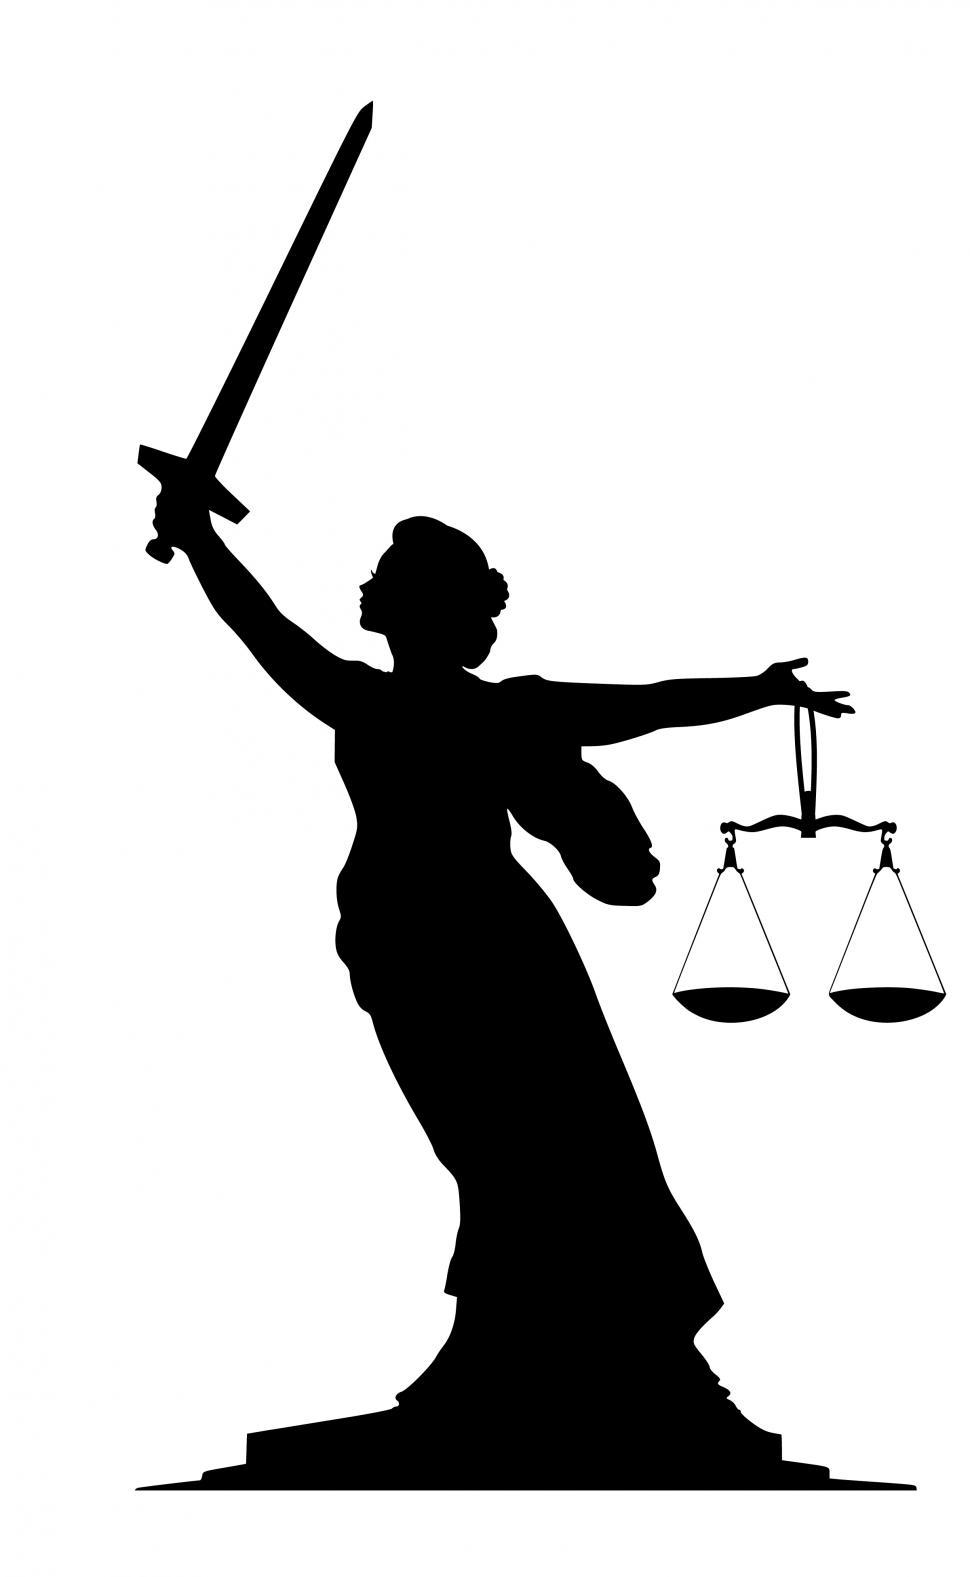 Download Free Stock HD Photo of lady justice Silhouette  Online